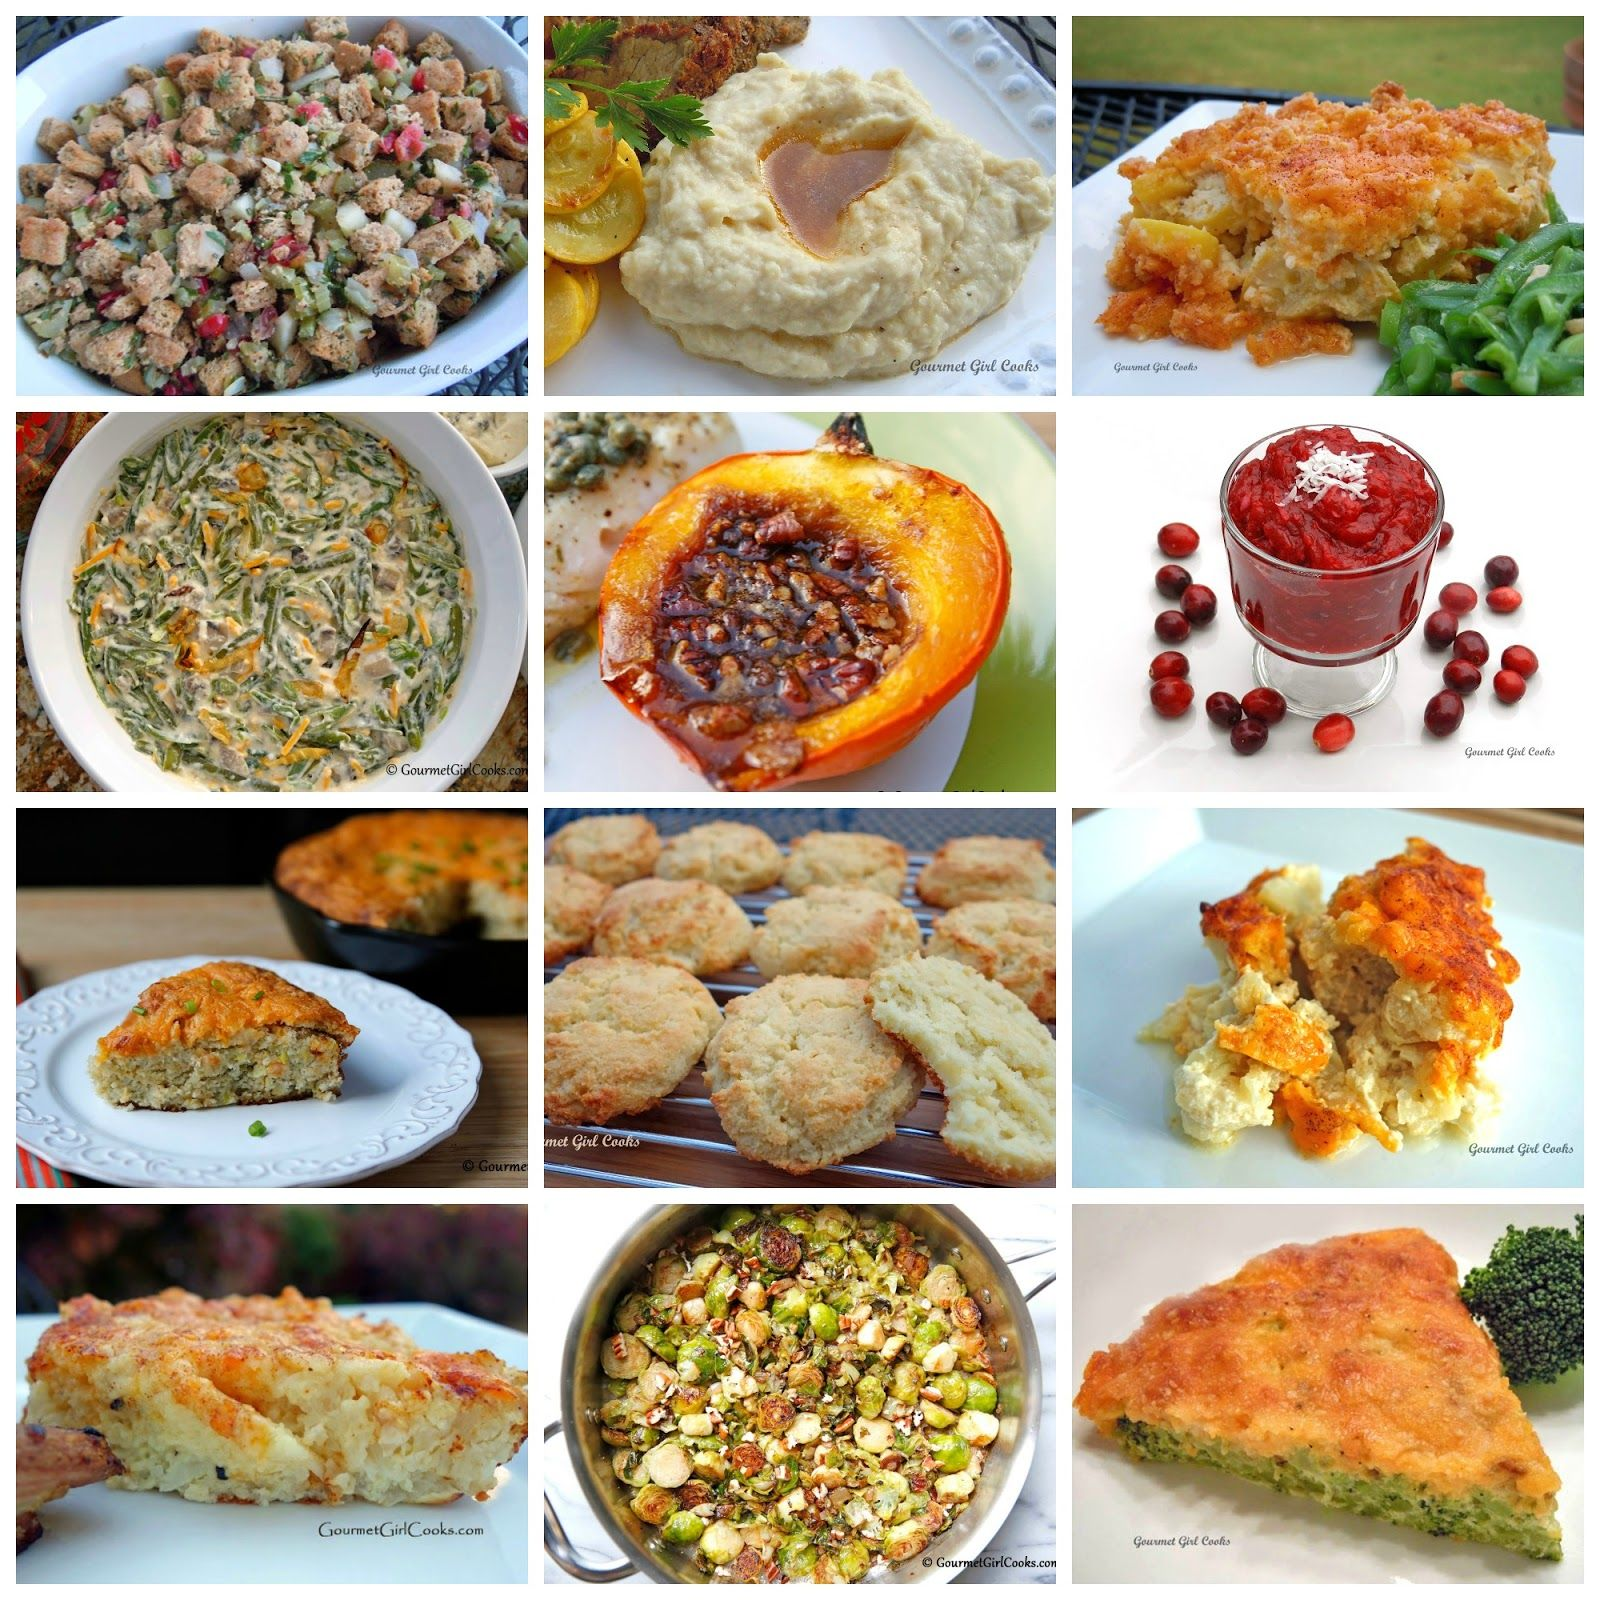 12 Thanksgiving Side Dish Recipes - Low Carb, Gluten Free ...